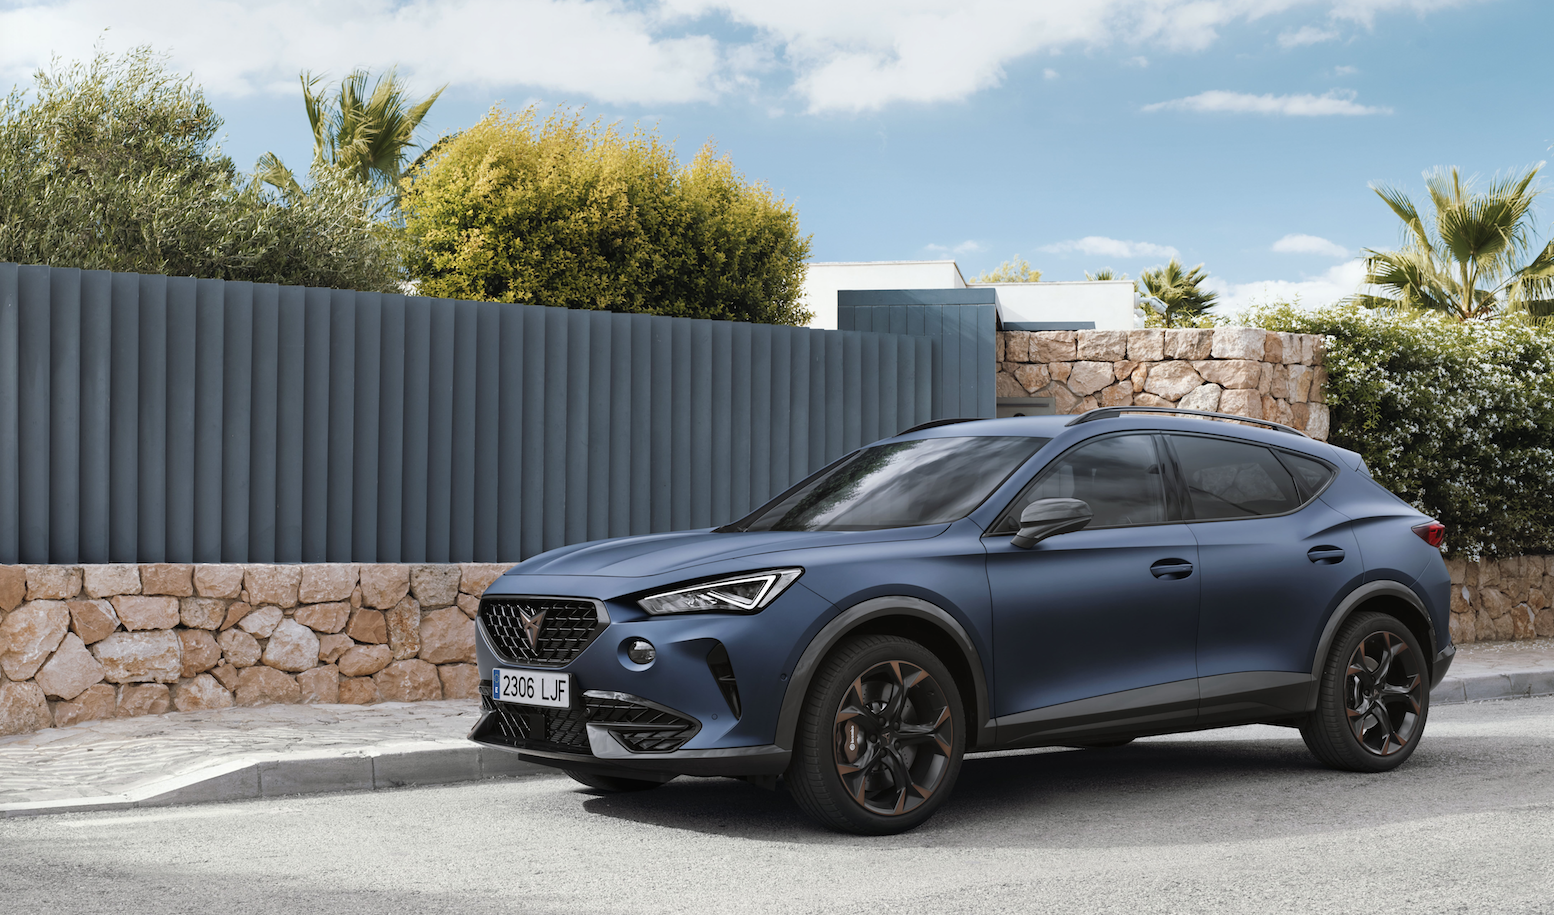 Cupra Formentor pricing revealed for Irish market